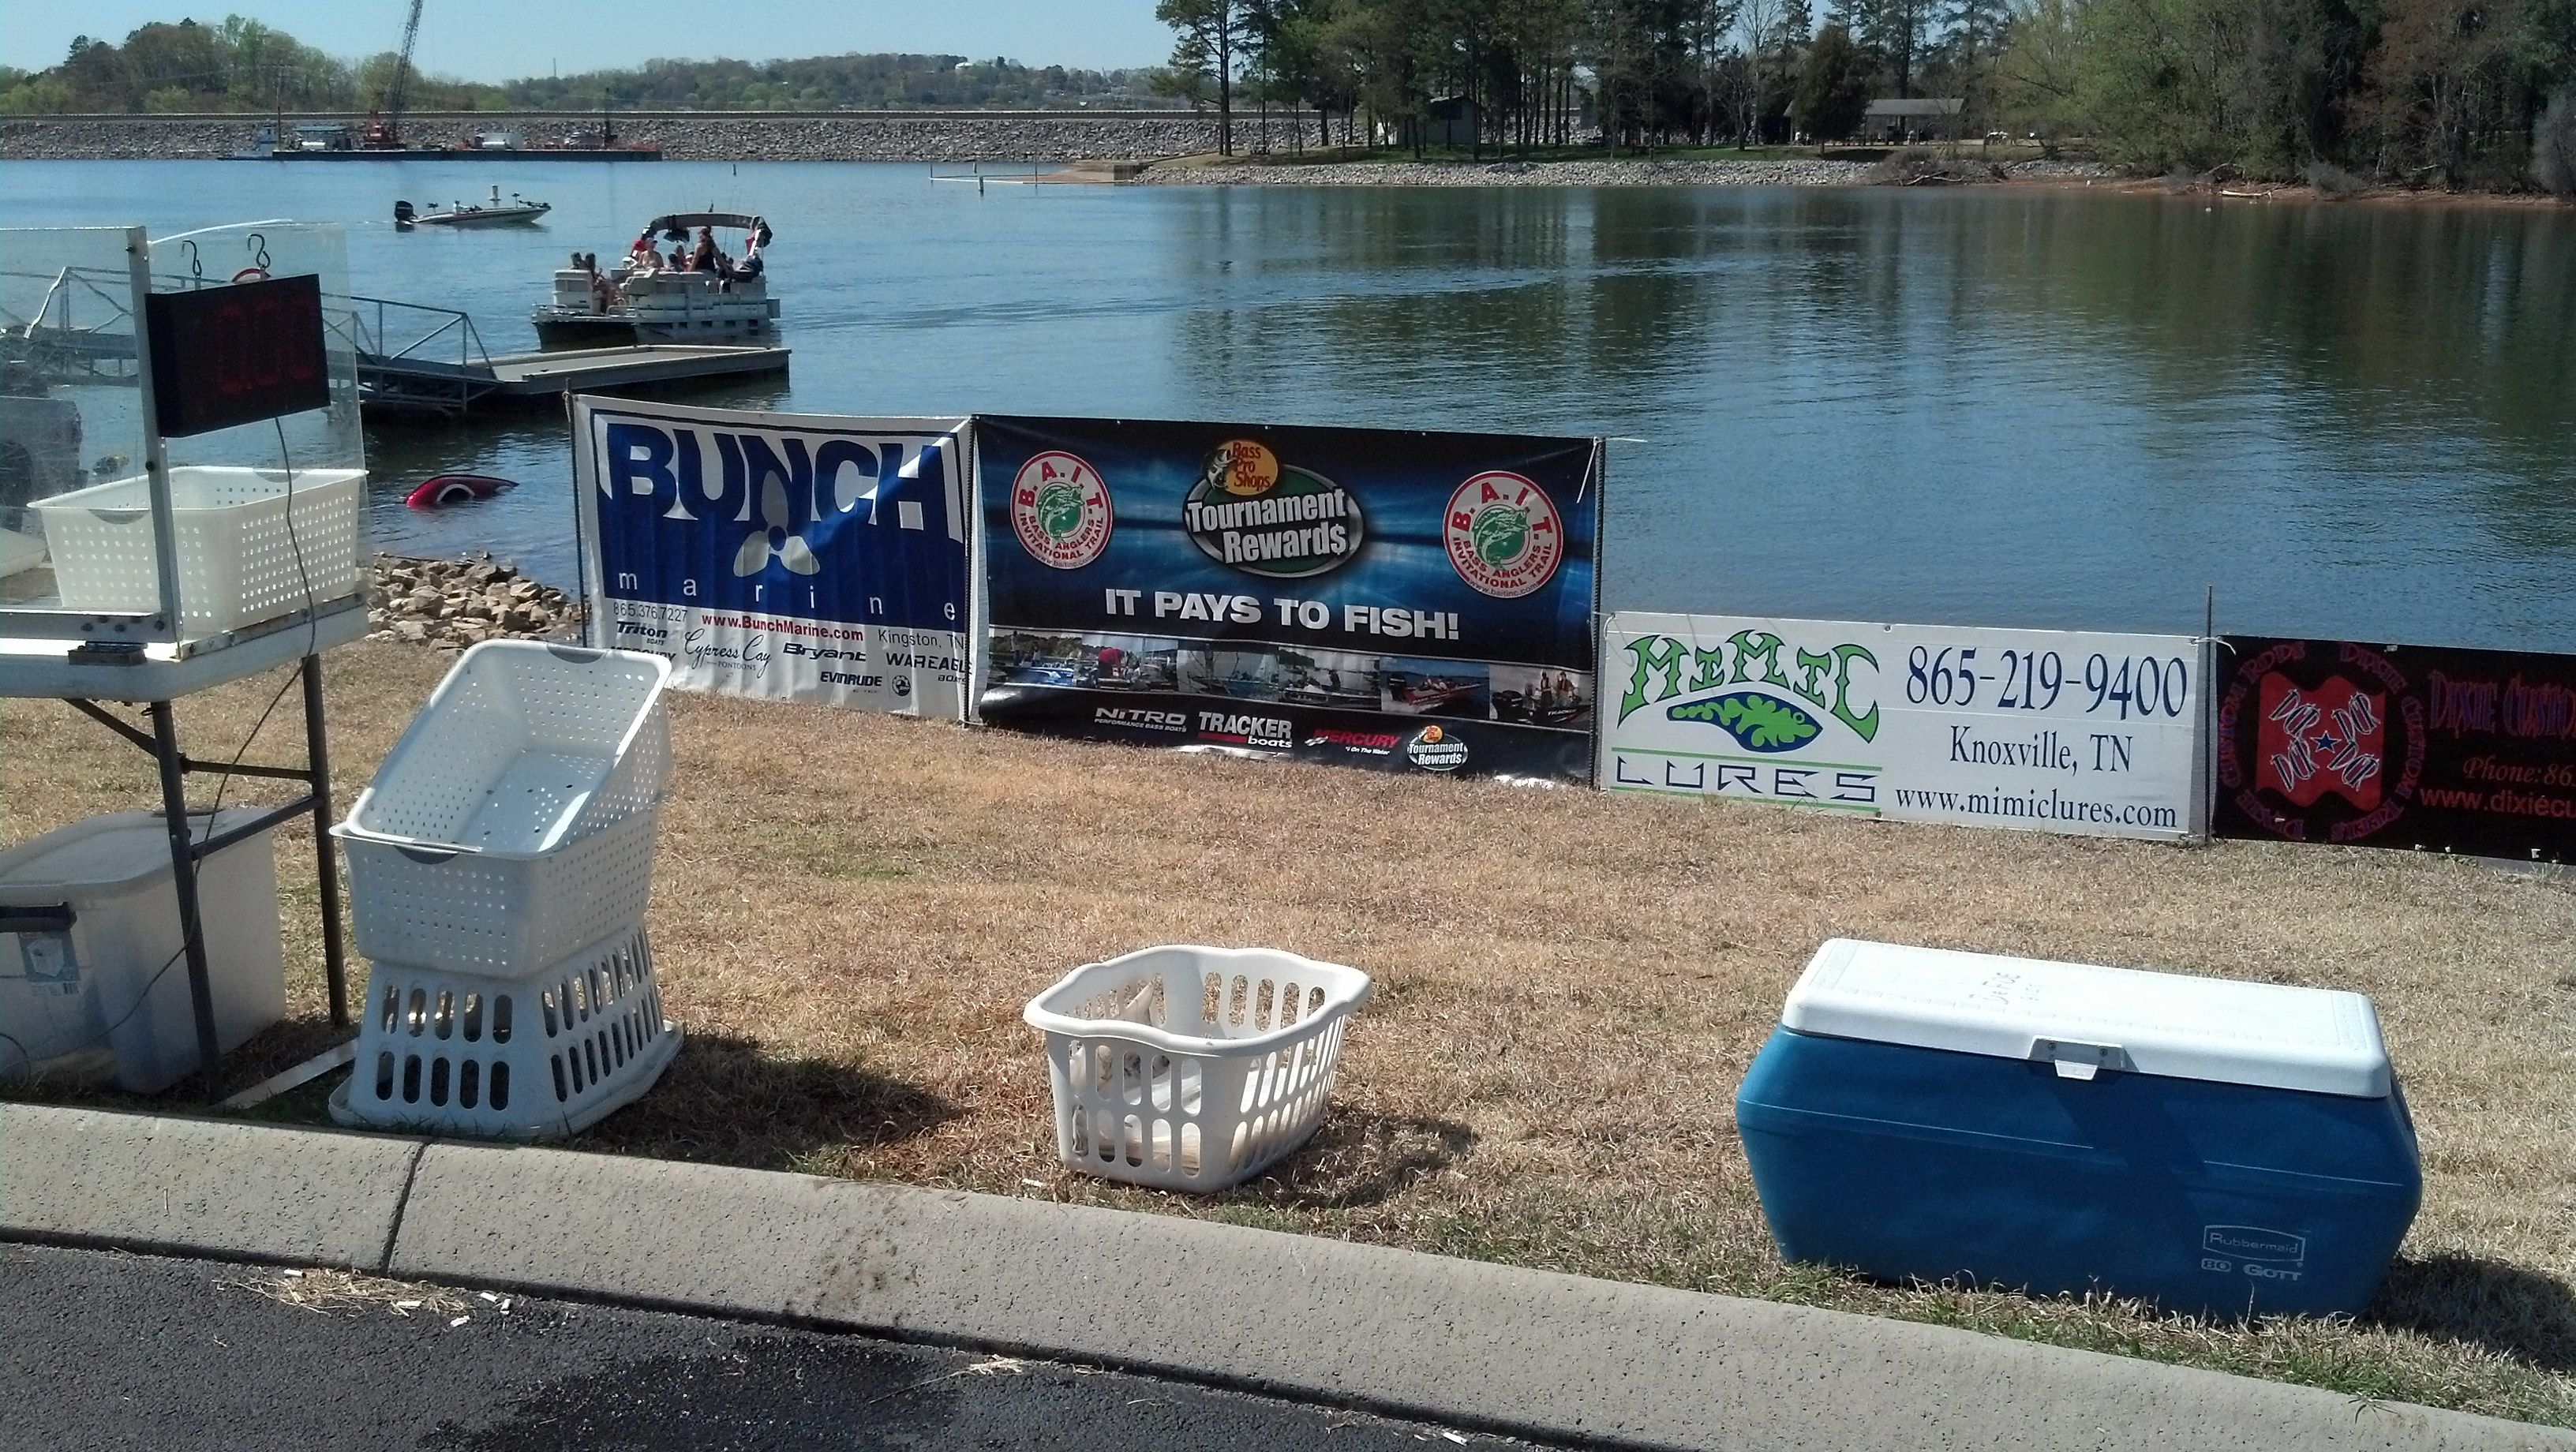 Jerry's Bait Shop Rockwood TN http://tnfishingreport.com/tournaments-and-results/tournament-results/bait-tn-ii-ft-loudoun-4-13-13/